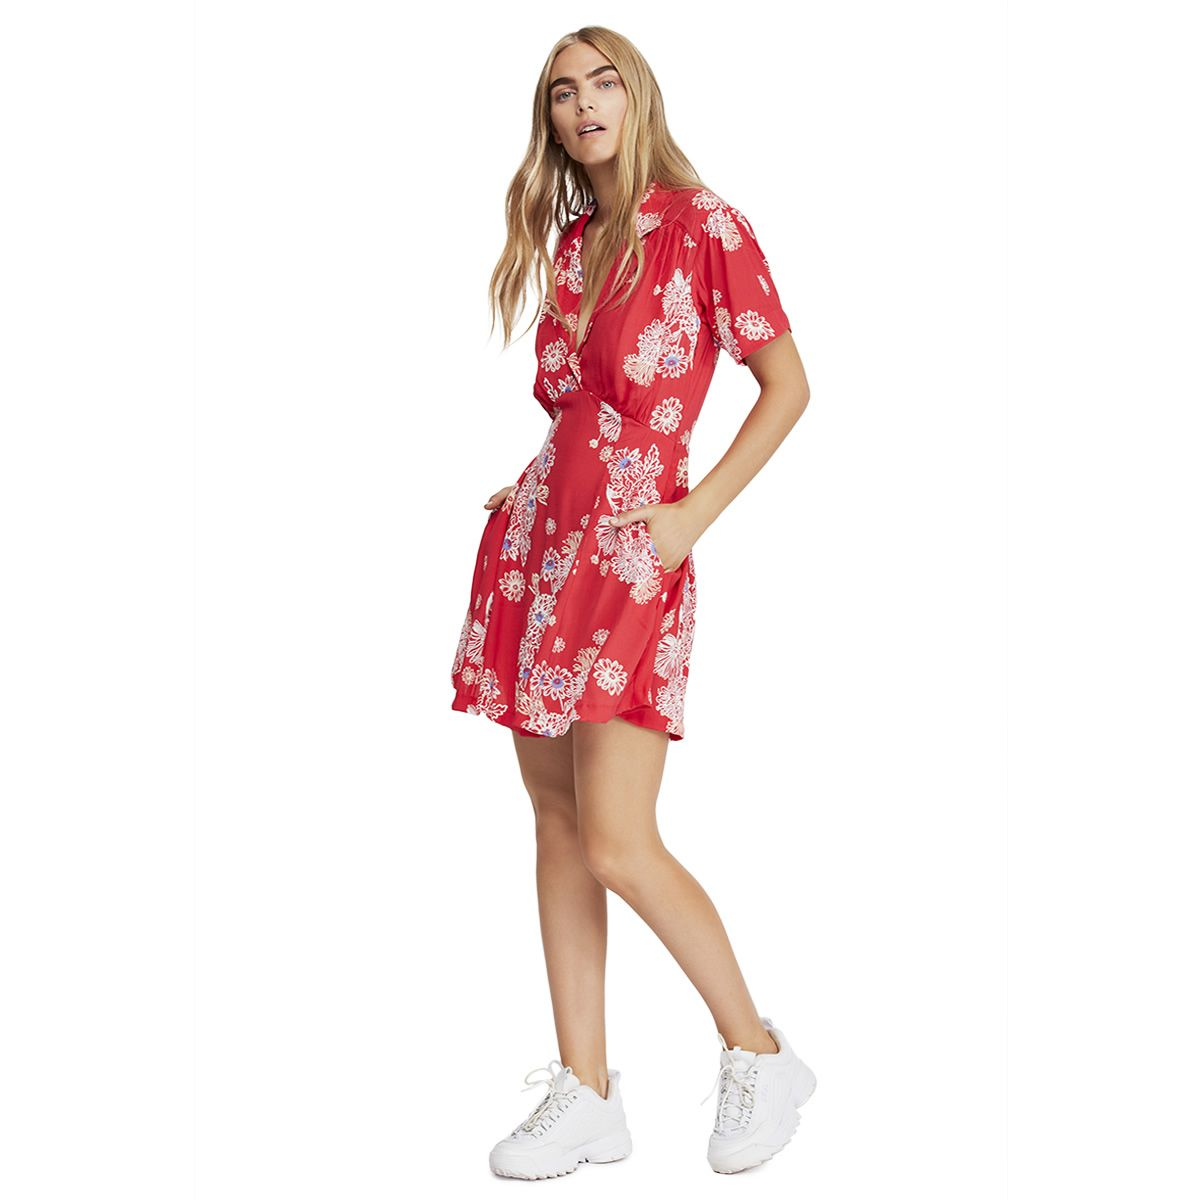 649f8548177 Free People Clothing - Womens Apparel - Macy s